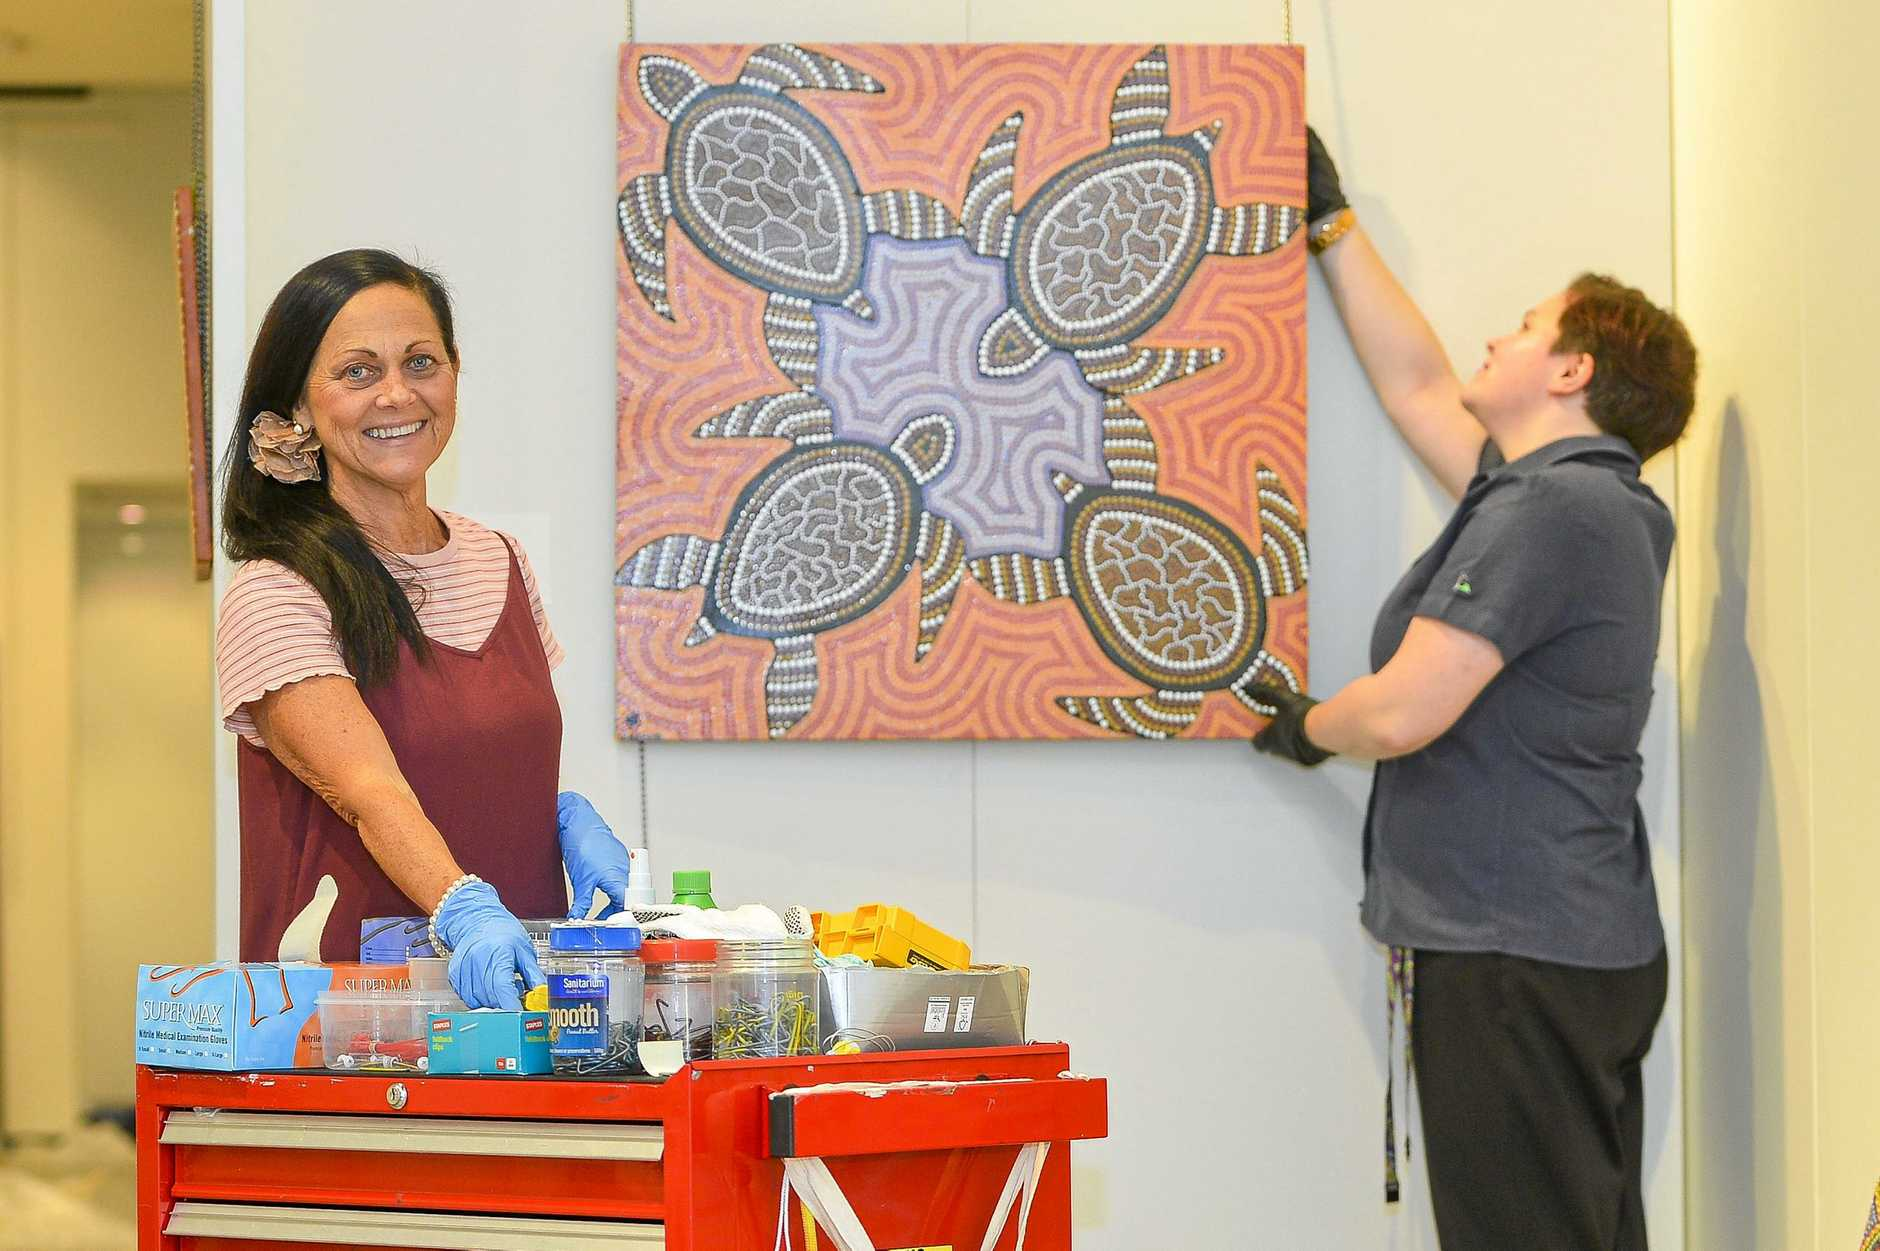 JUST RIGHT: Deleece Lewis, volunteer and Rebecca Lush carefully install the gallery's latest exhibitions.